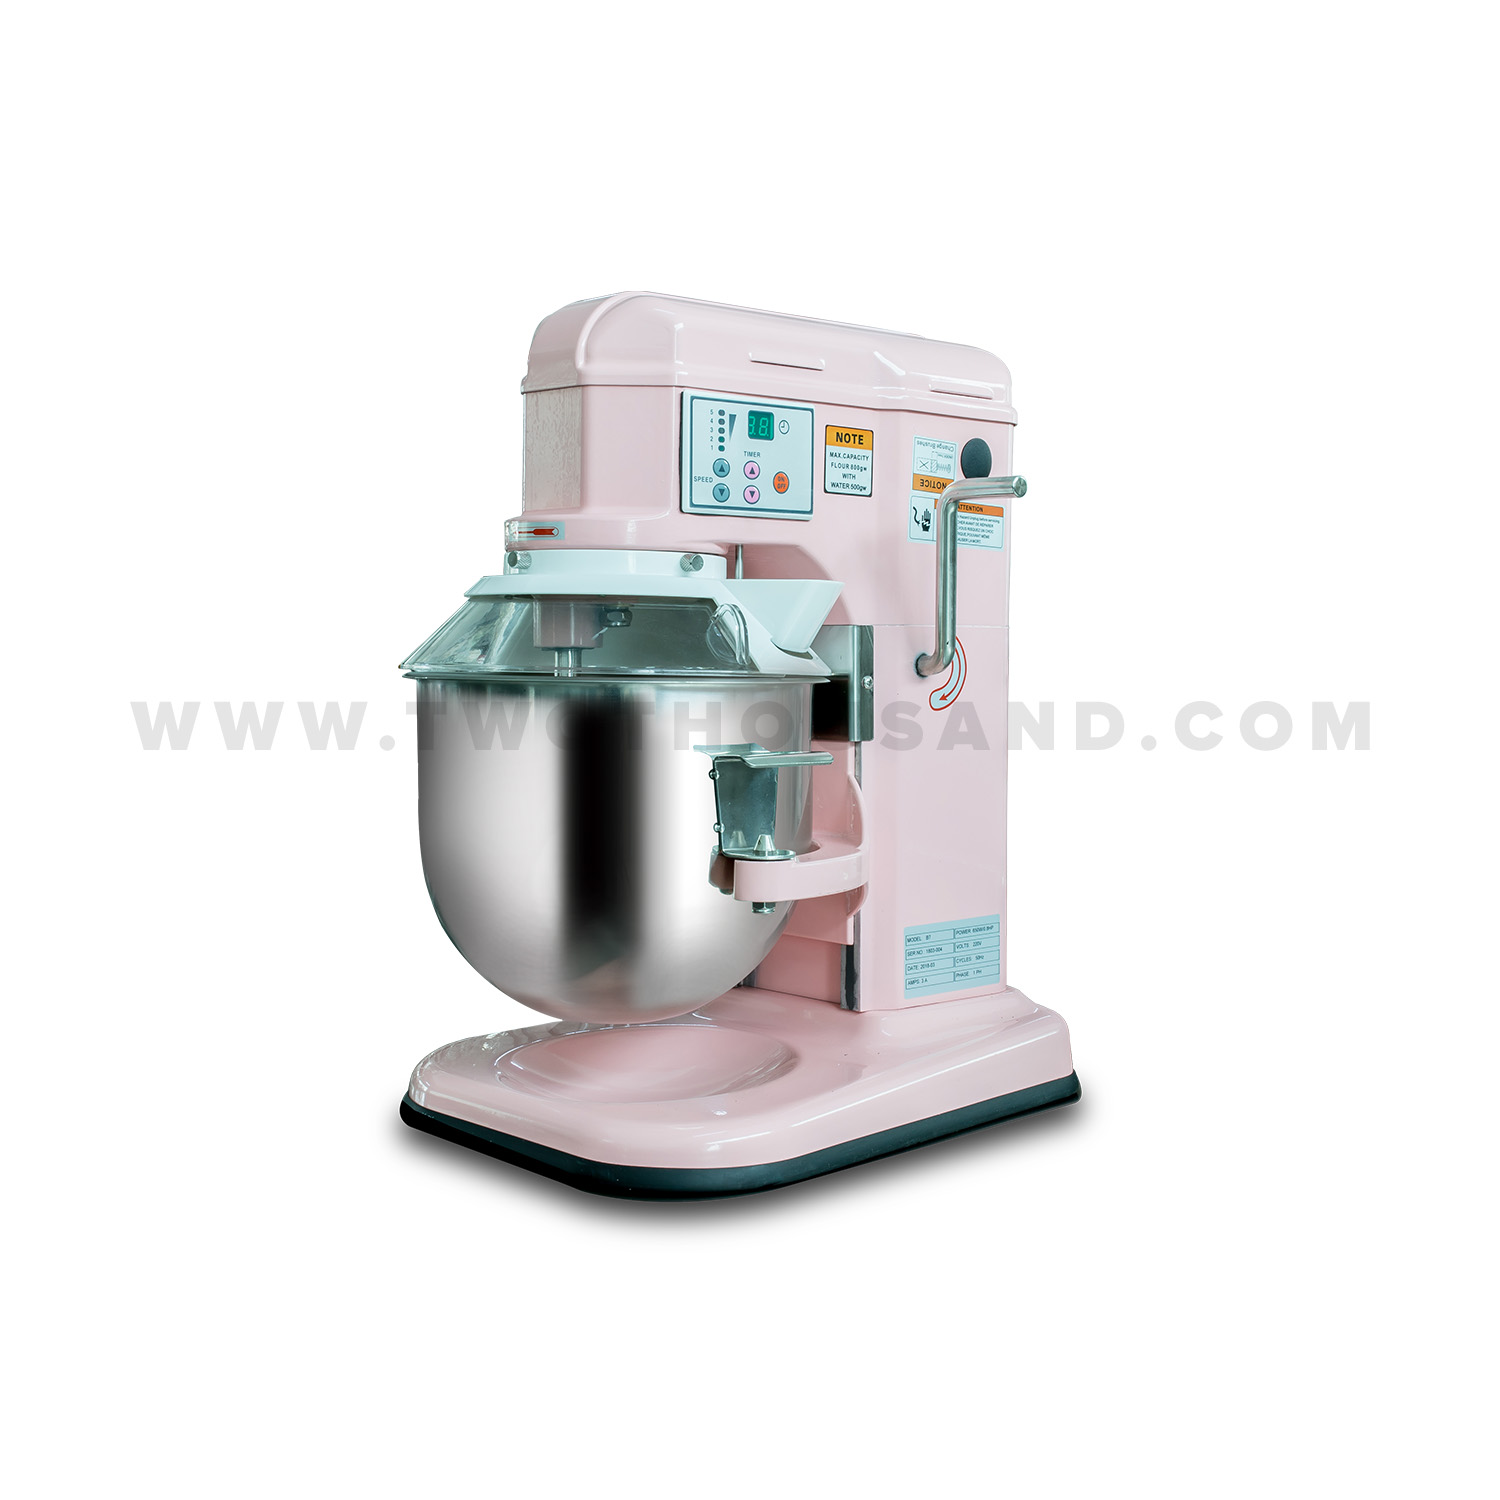 Commercial Countertop Mixer 7l 5 Speed Gear Drive Ce Digital Control Countertop Stand